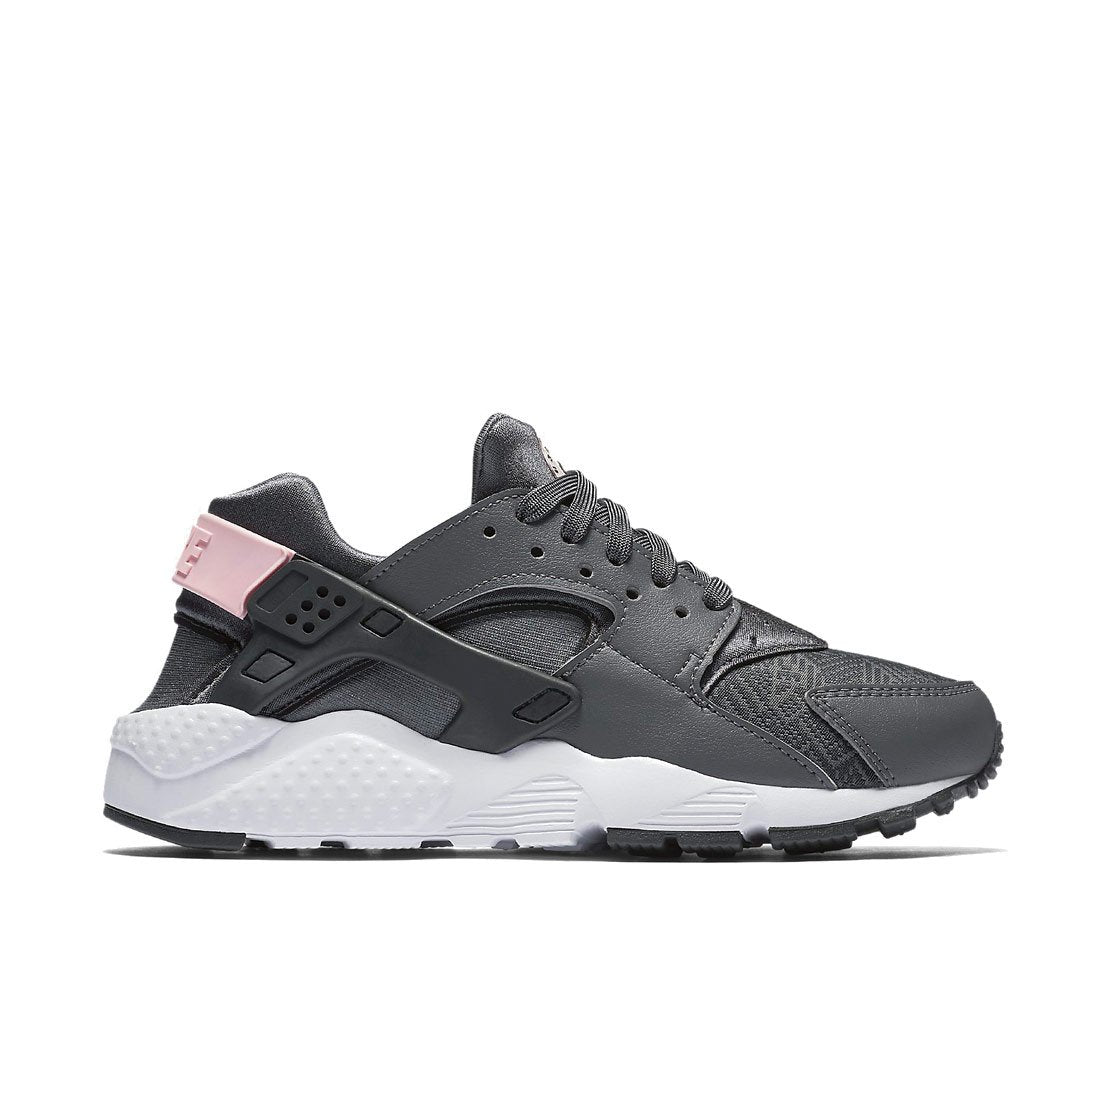 0a52fc60d51a Grade School Youth Size Nike Air Huarache Run SE 904538 001 ...